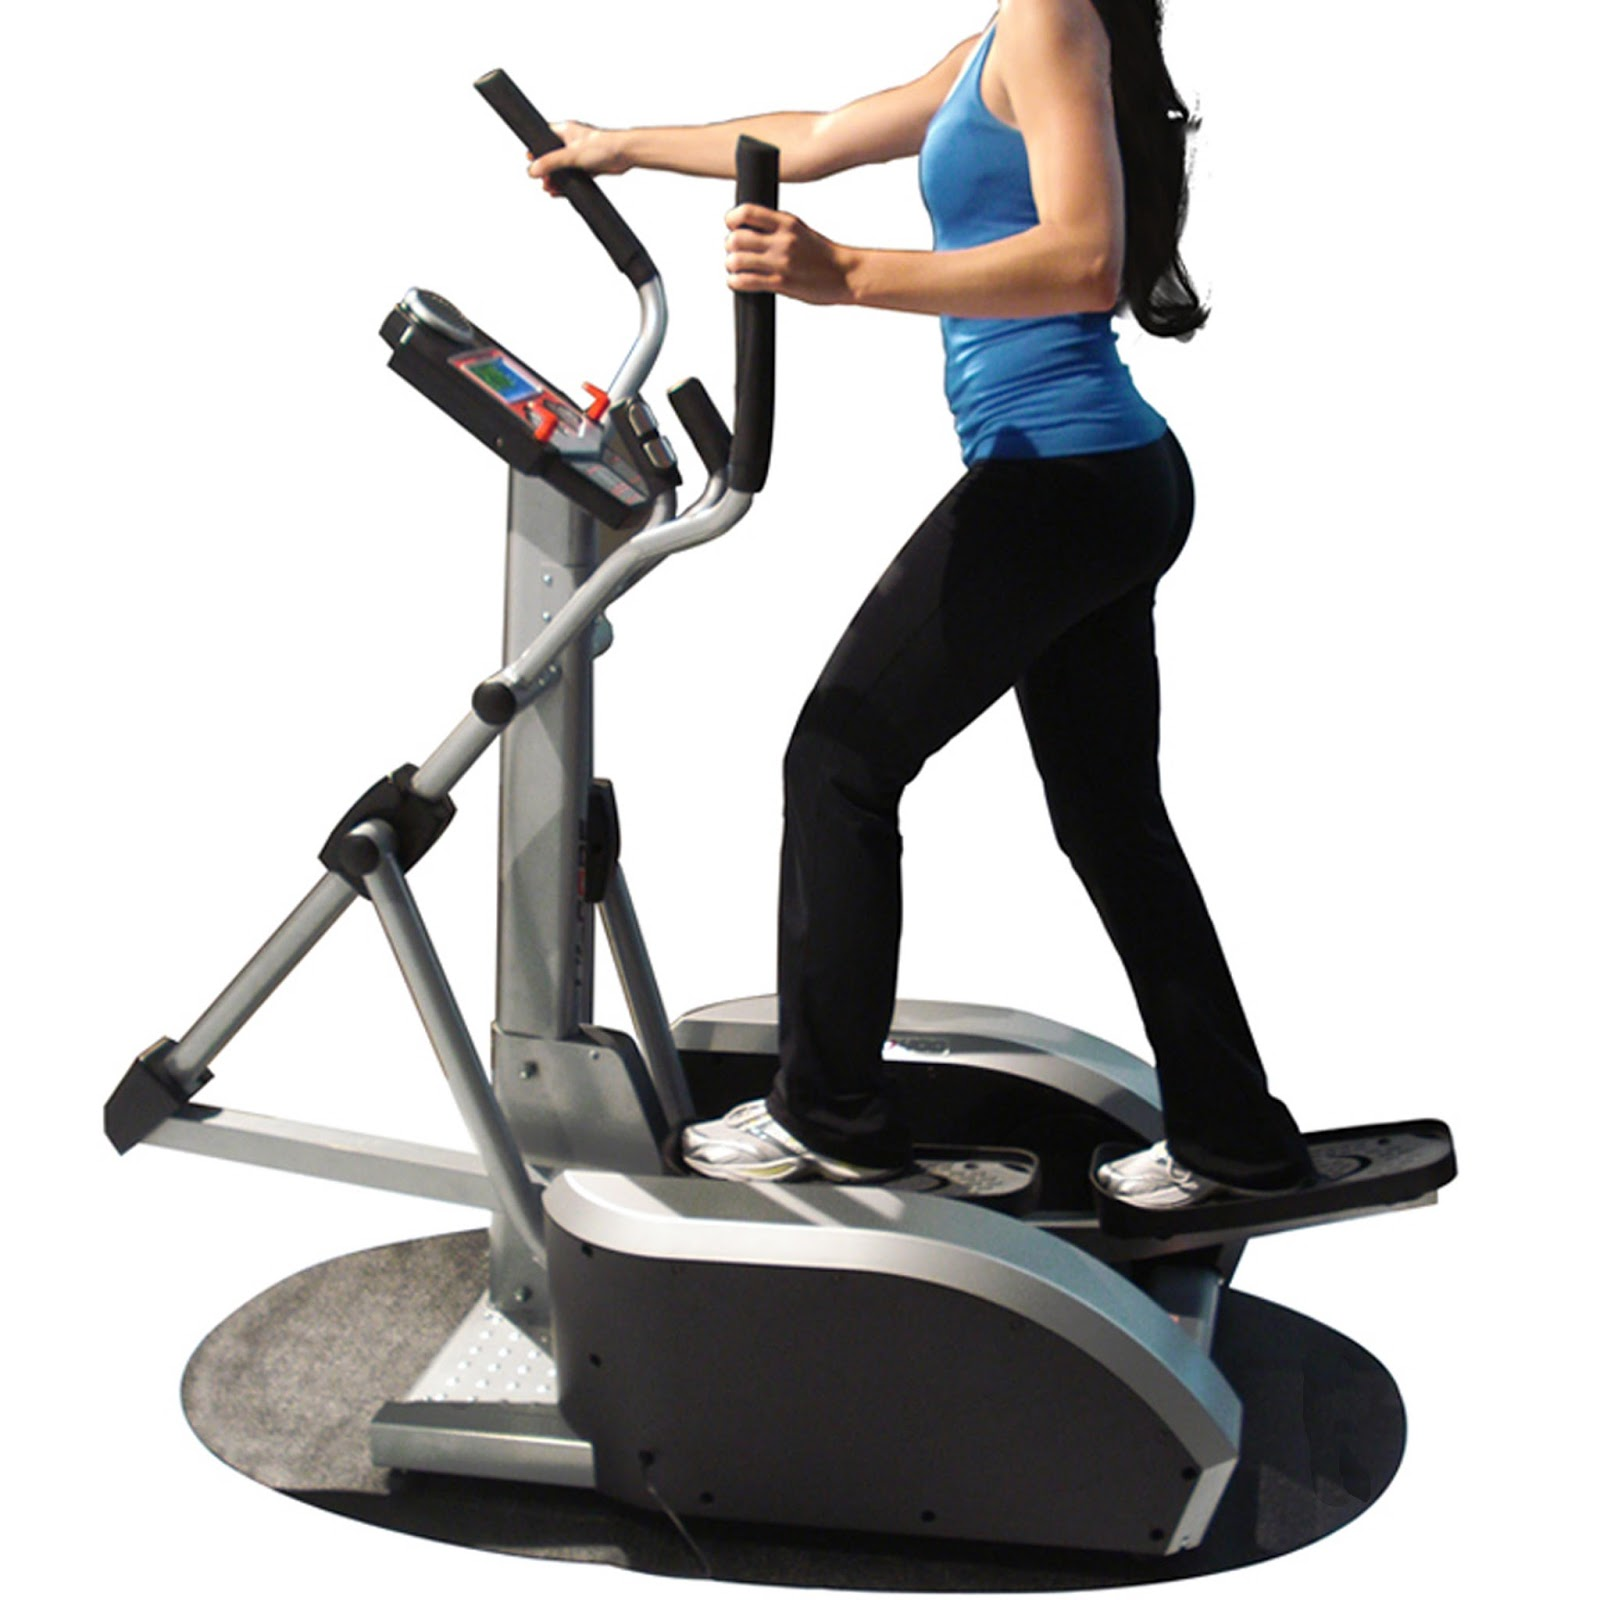 Life Care: How to use an Elliptical trainers exercise ...